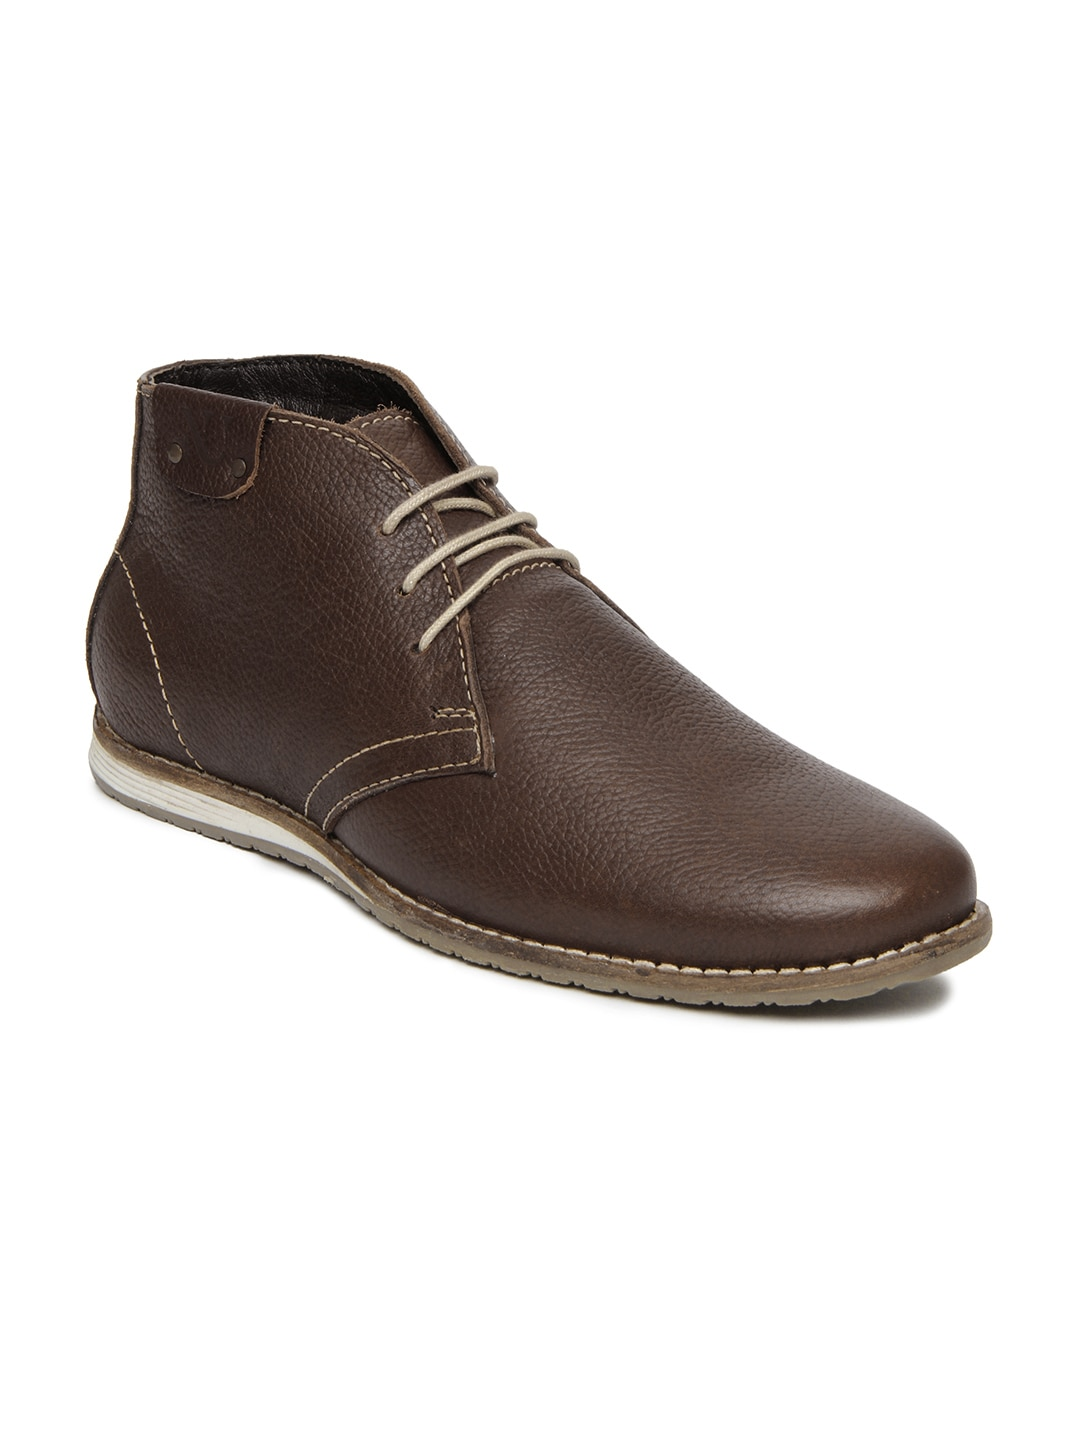 buy numero uno brown leather casual shoes 632